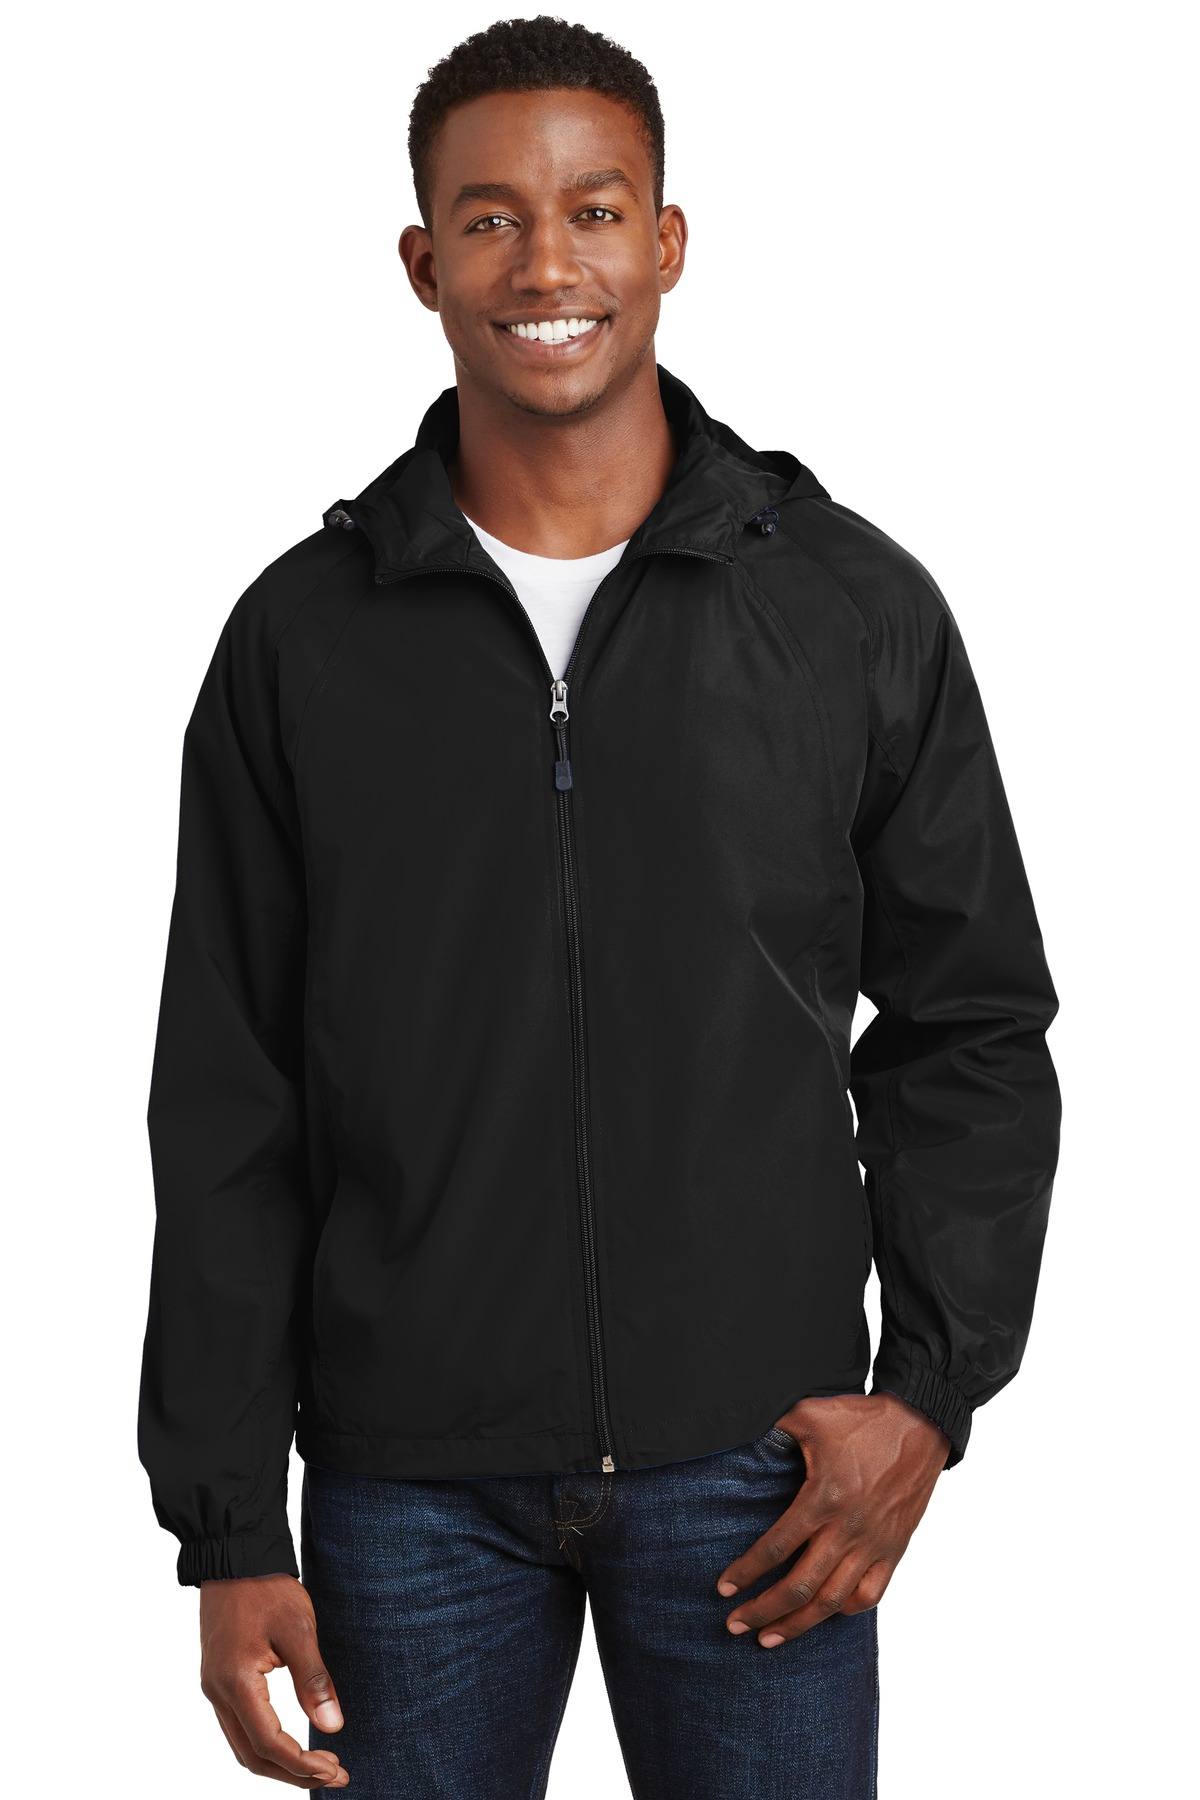 Sport-Tek ®  Hooded Raglan Jacket. JST73 - Black